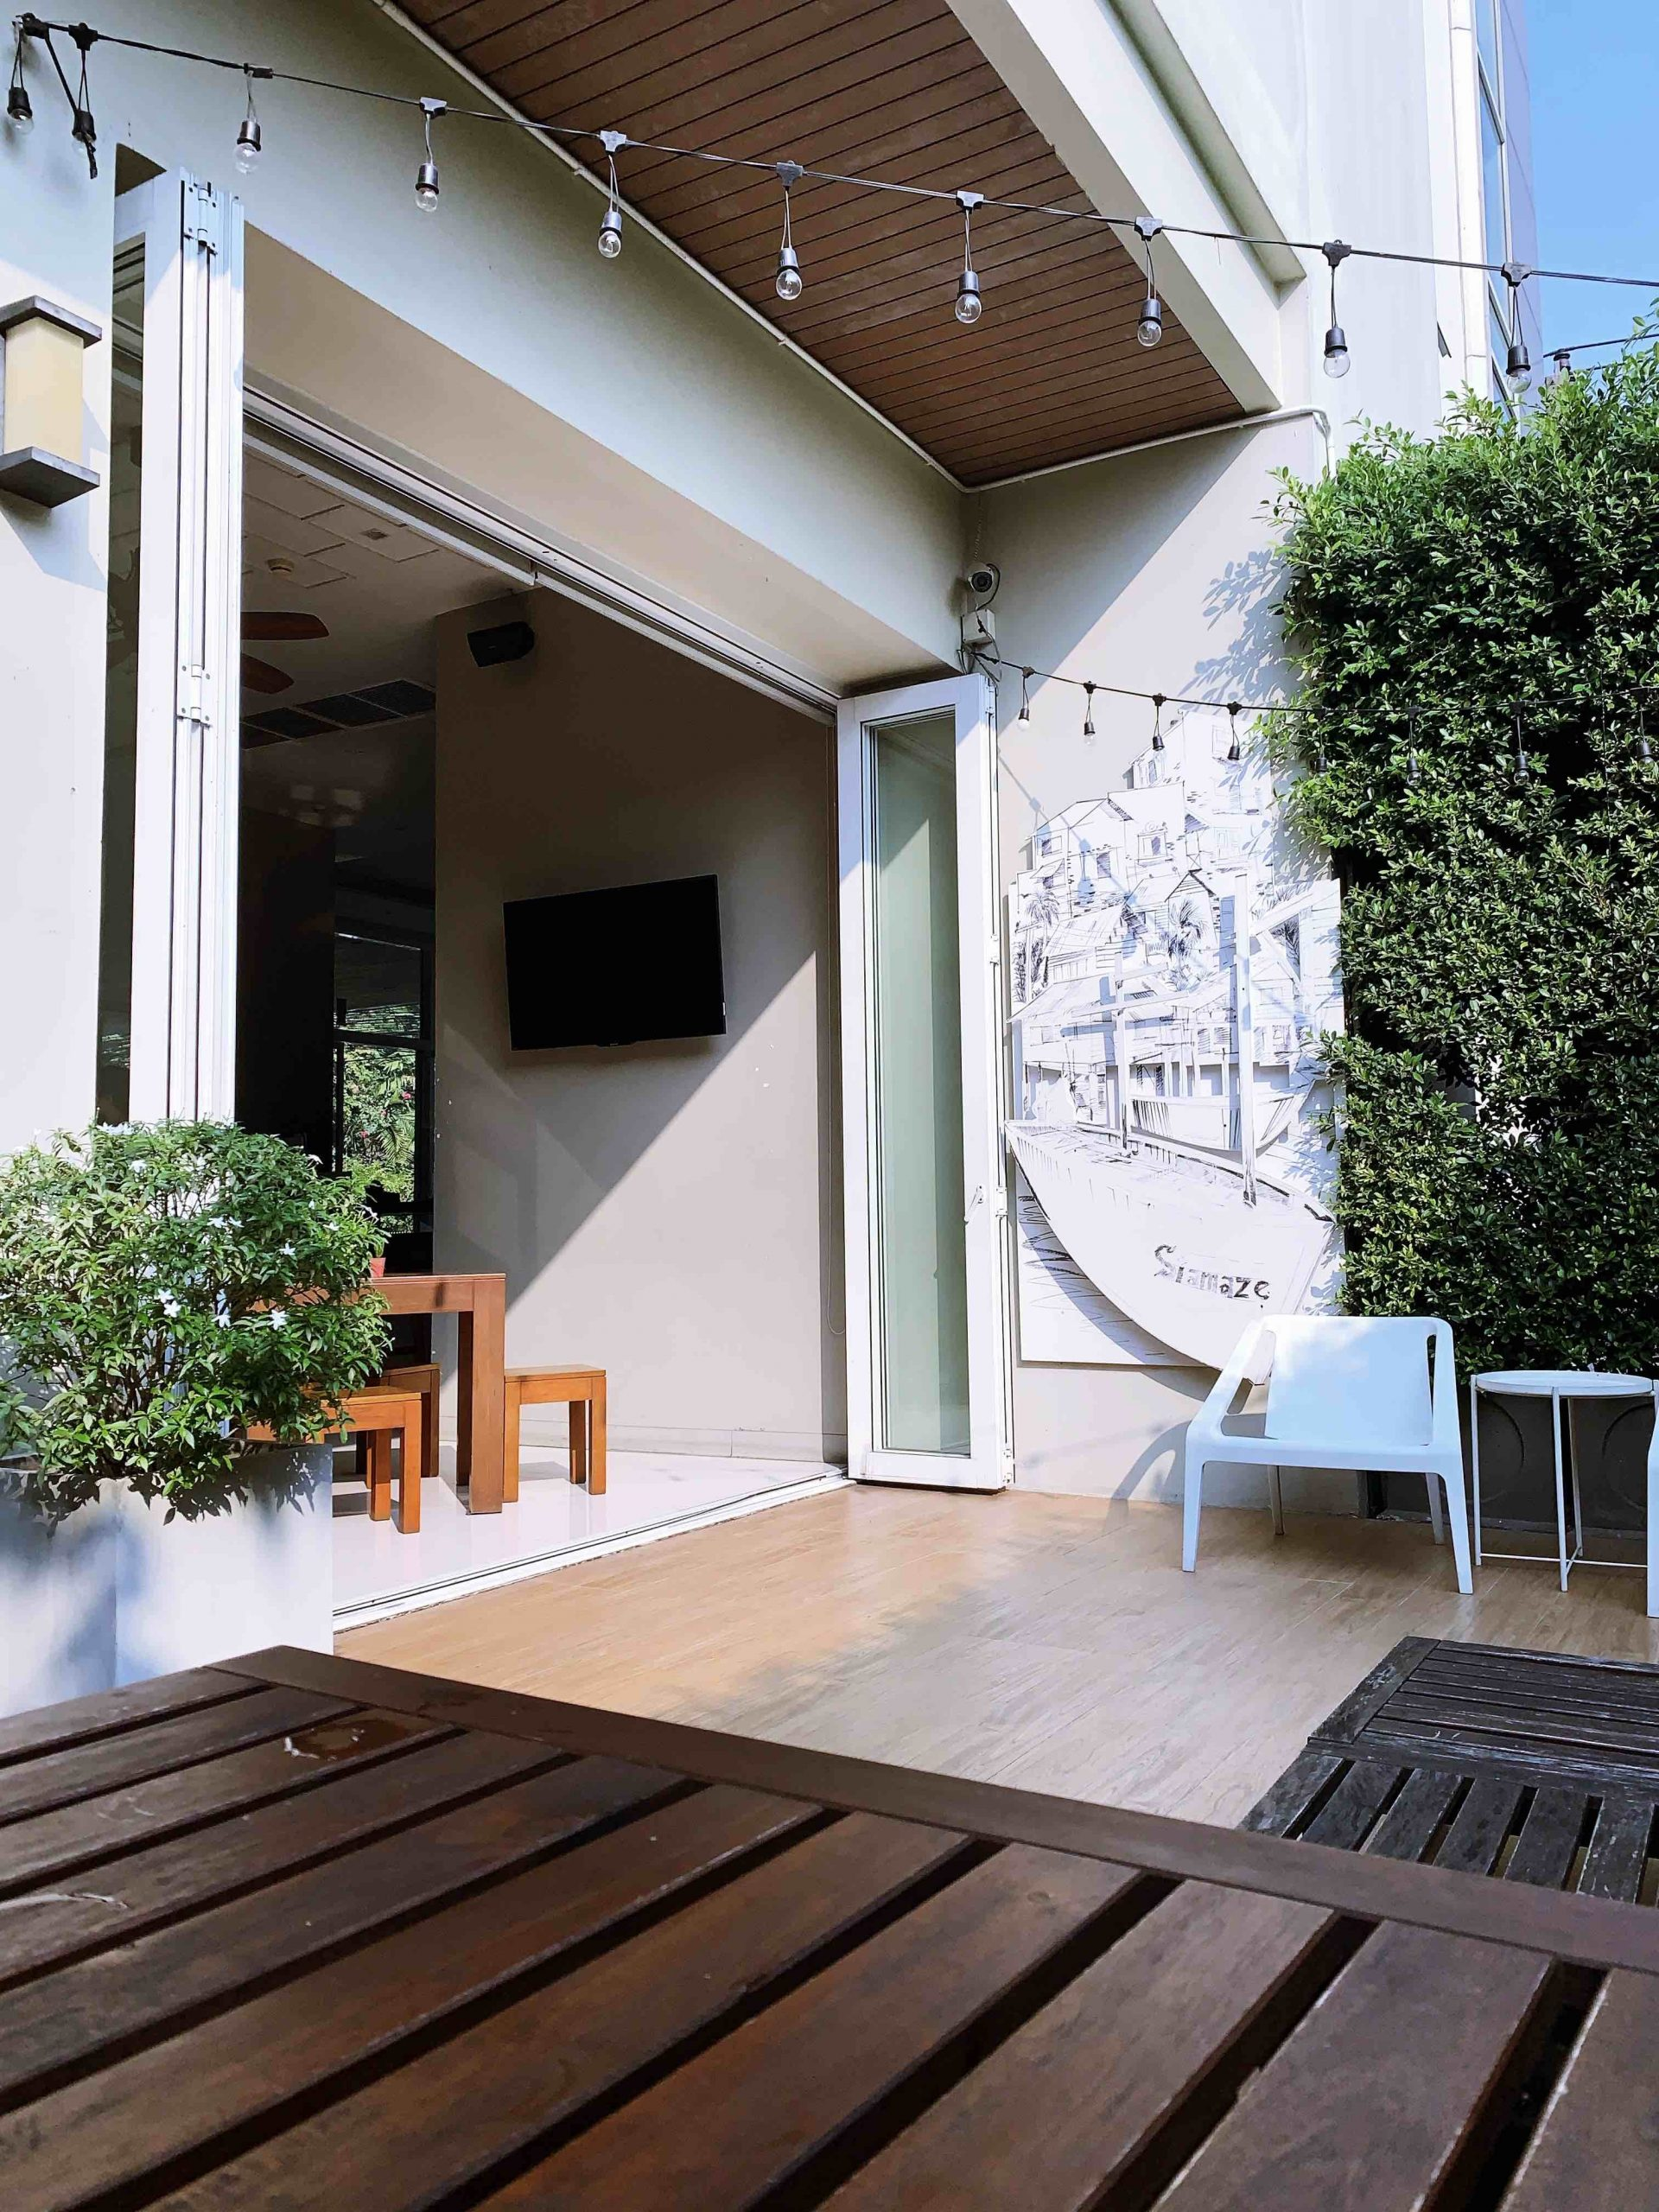 How Much Does it Cost to Fit Patio Doors in the UK?